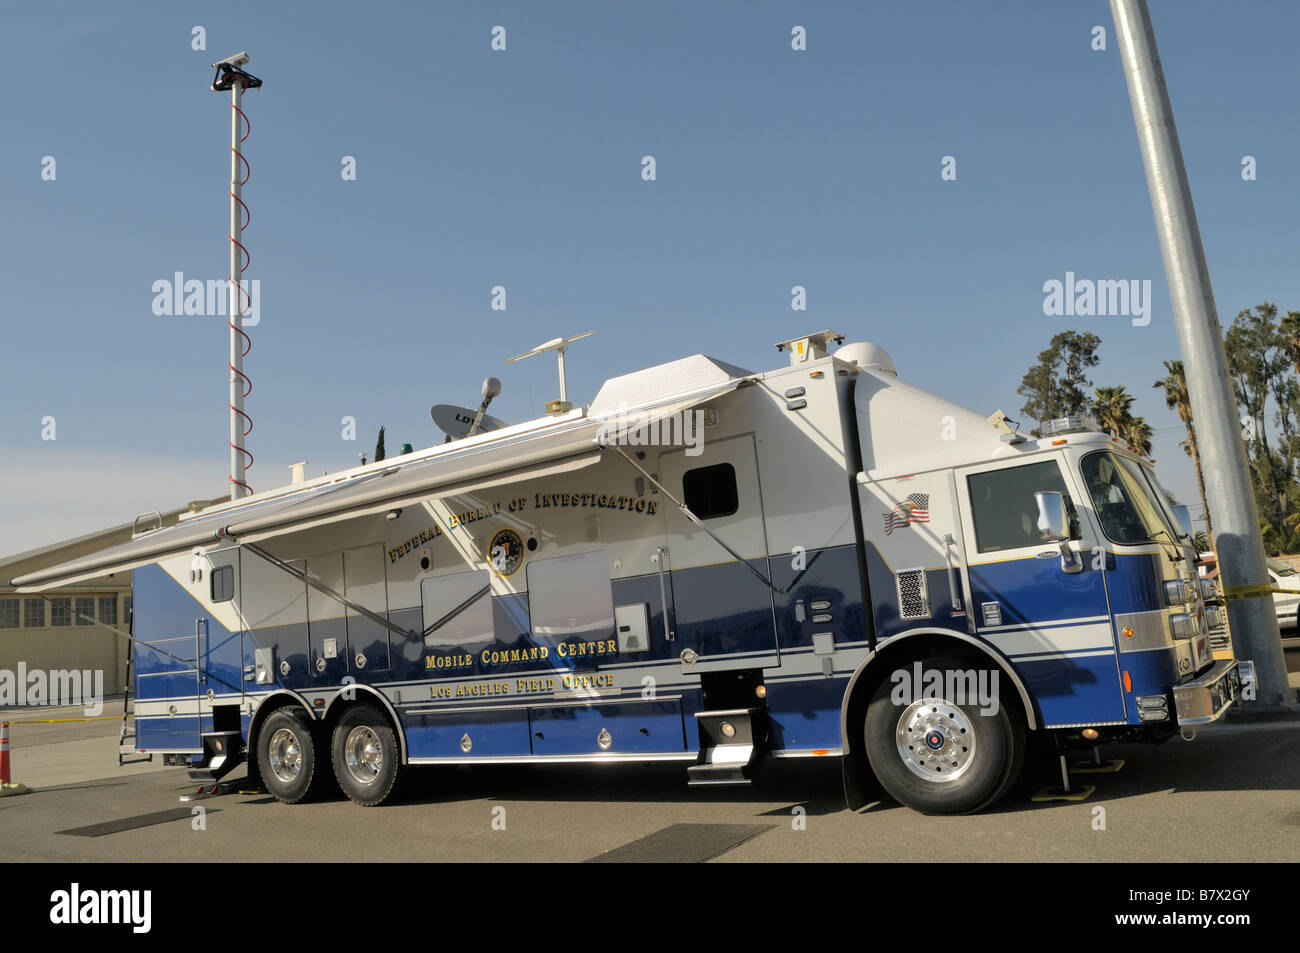 Rare view of a probably brand new Mobile Command Center operated